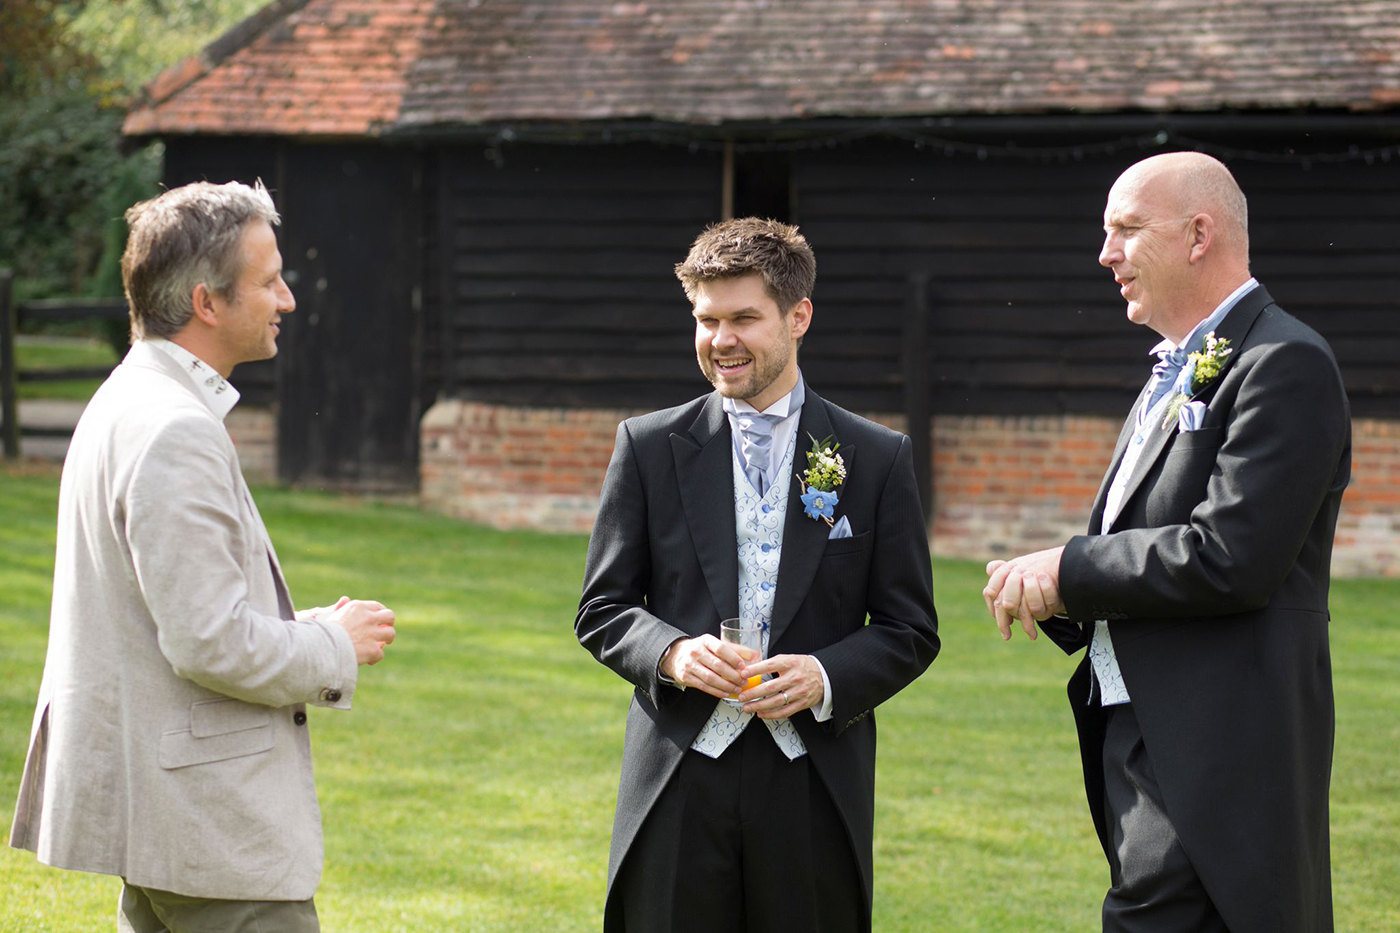 Wedding Magic Entertainer Mark Cairns - with guests photo 2